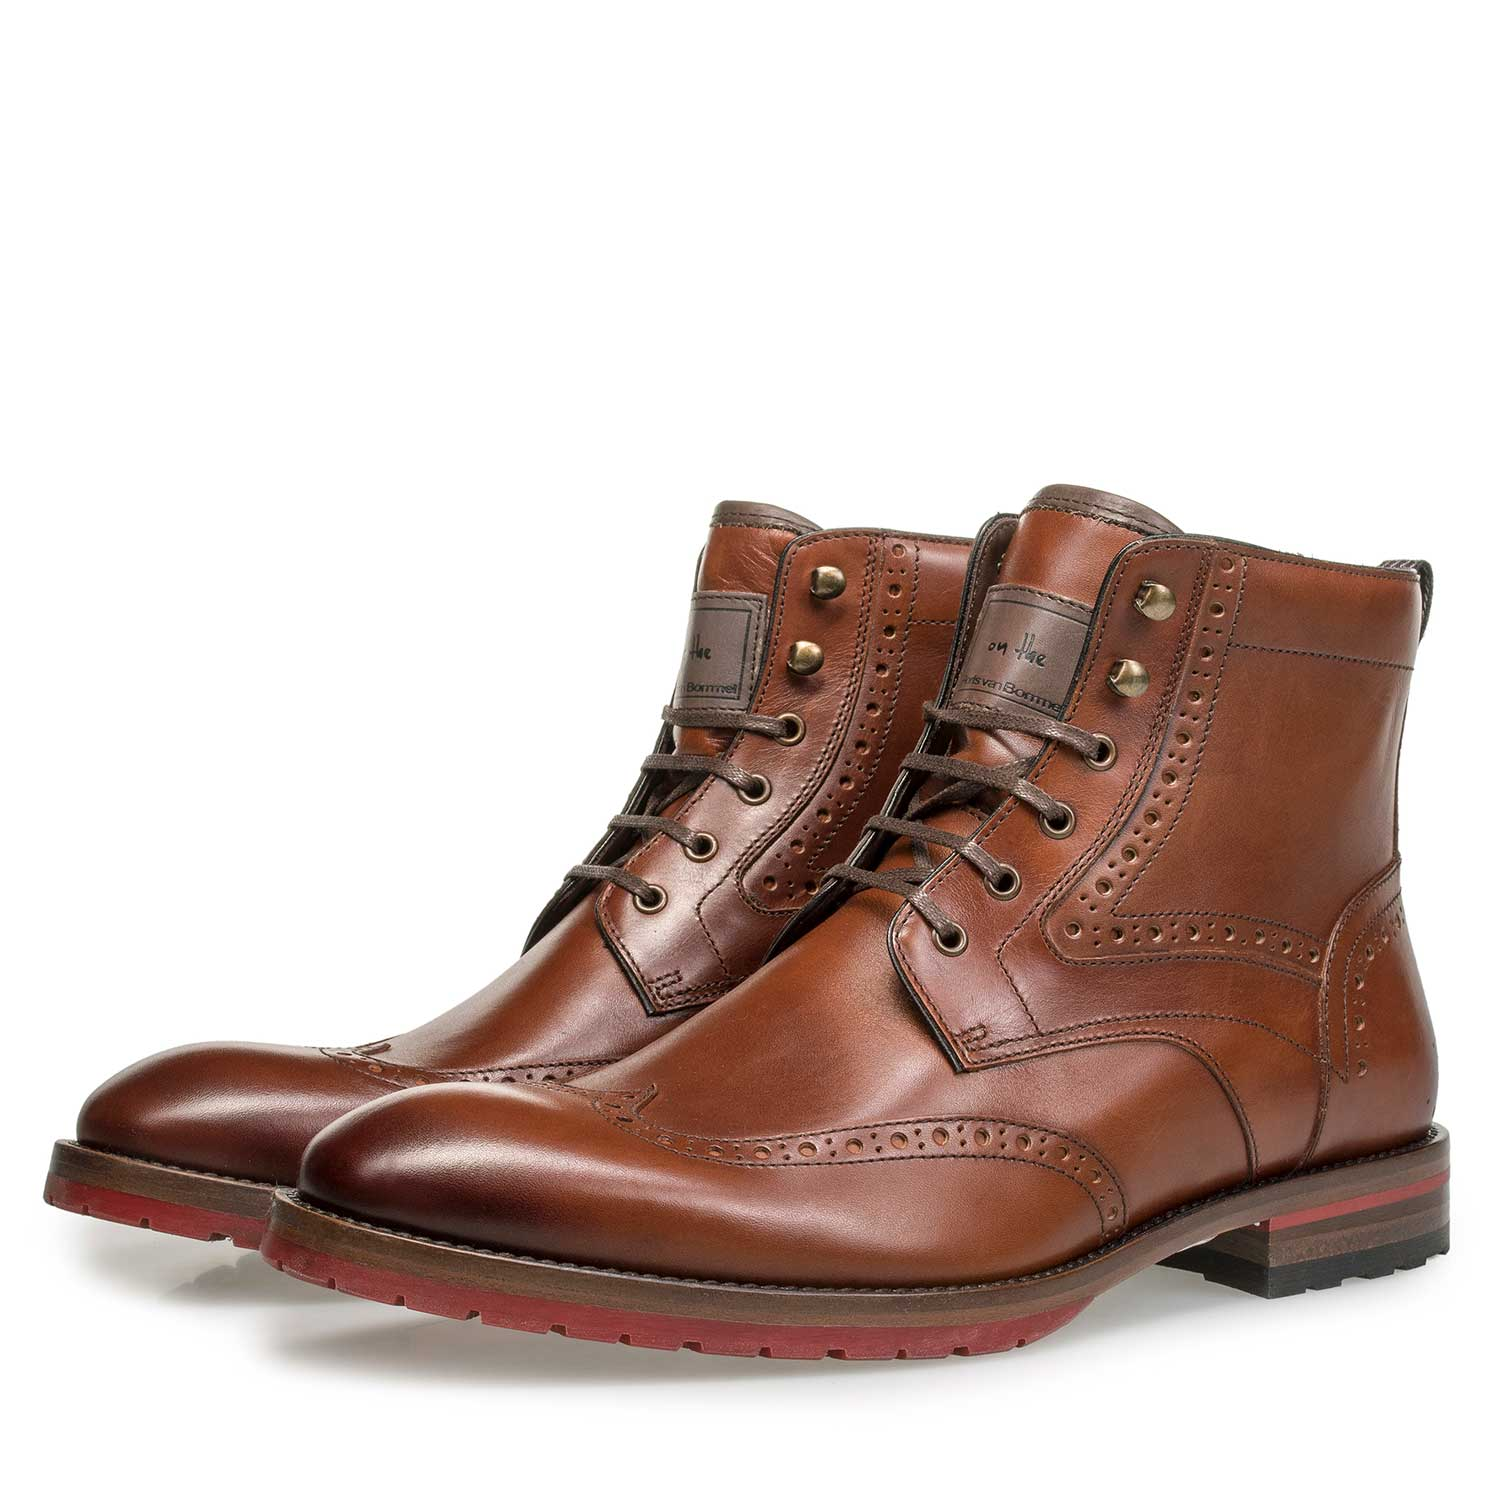 10295/03 - Cognac-coloured brogue leather lace boot